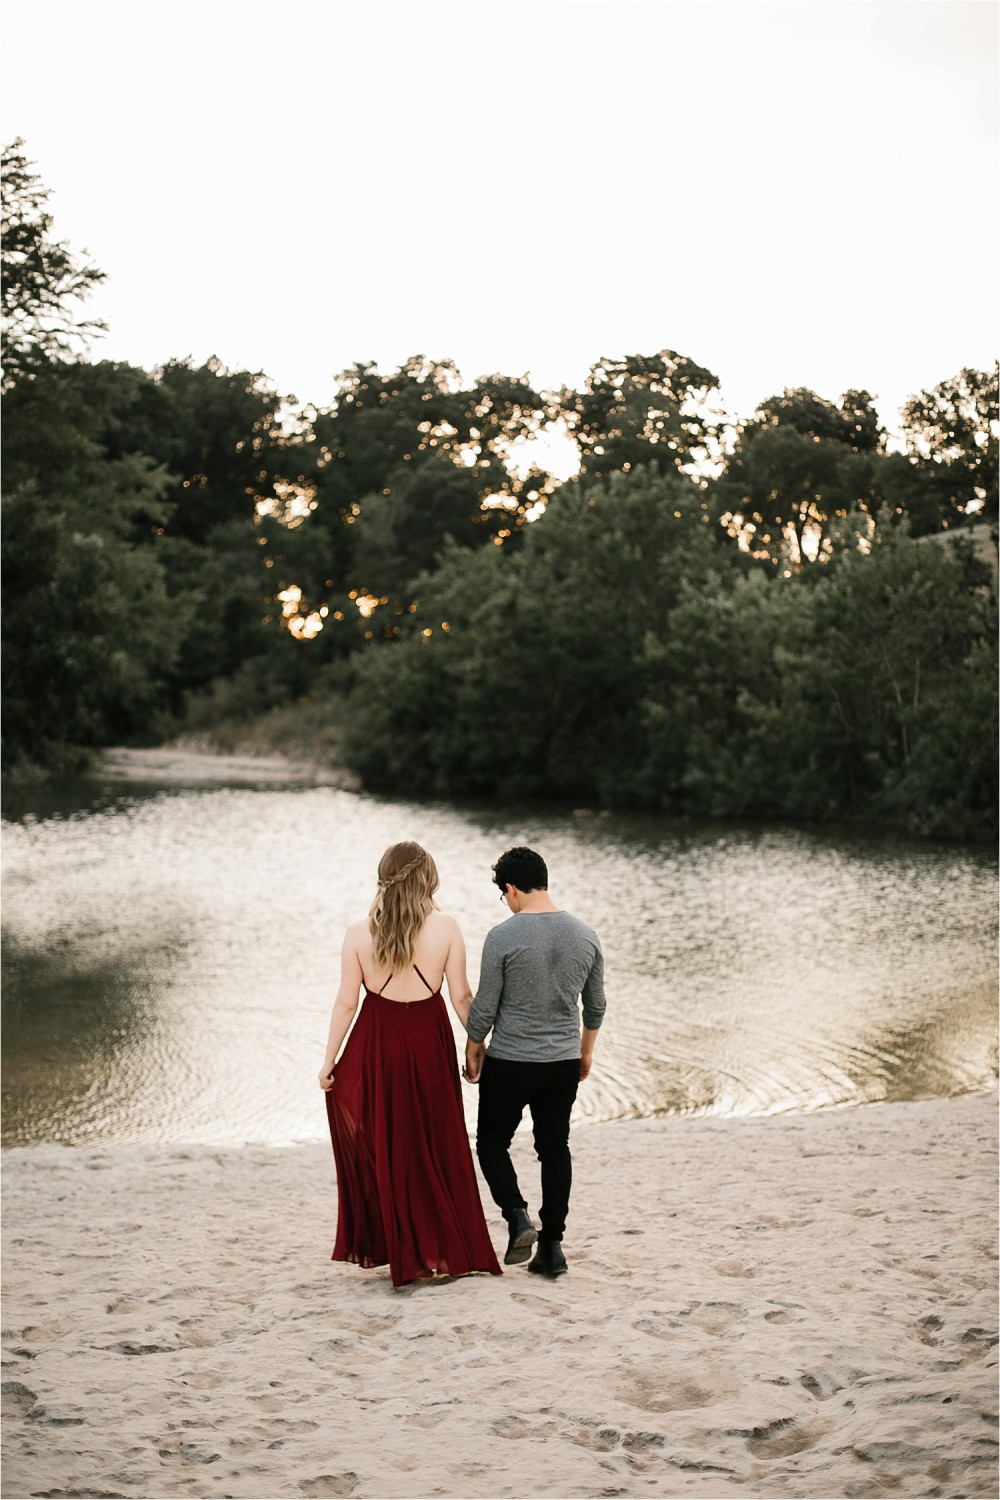 Romantic Austin, Texas Engagement Session with outfit inspiration + flowy red dress from Lulu's at Mckinney Falls State Park by North Texas Wedding Photographer, Rachel Meagan Photography __ 36